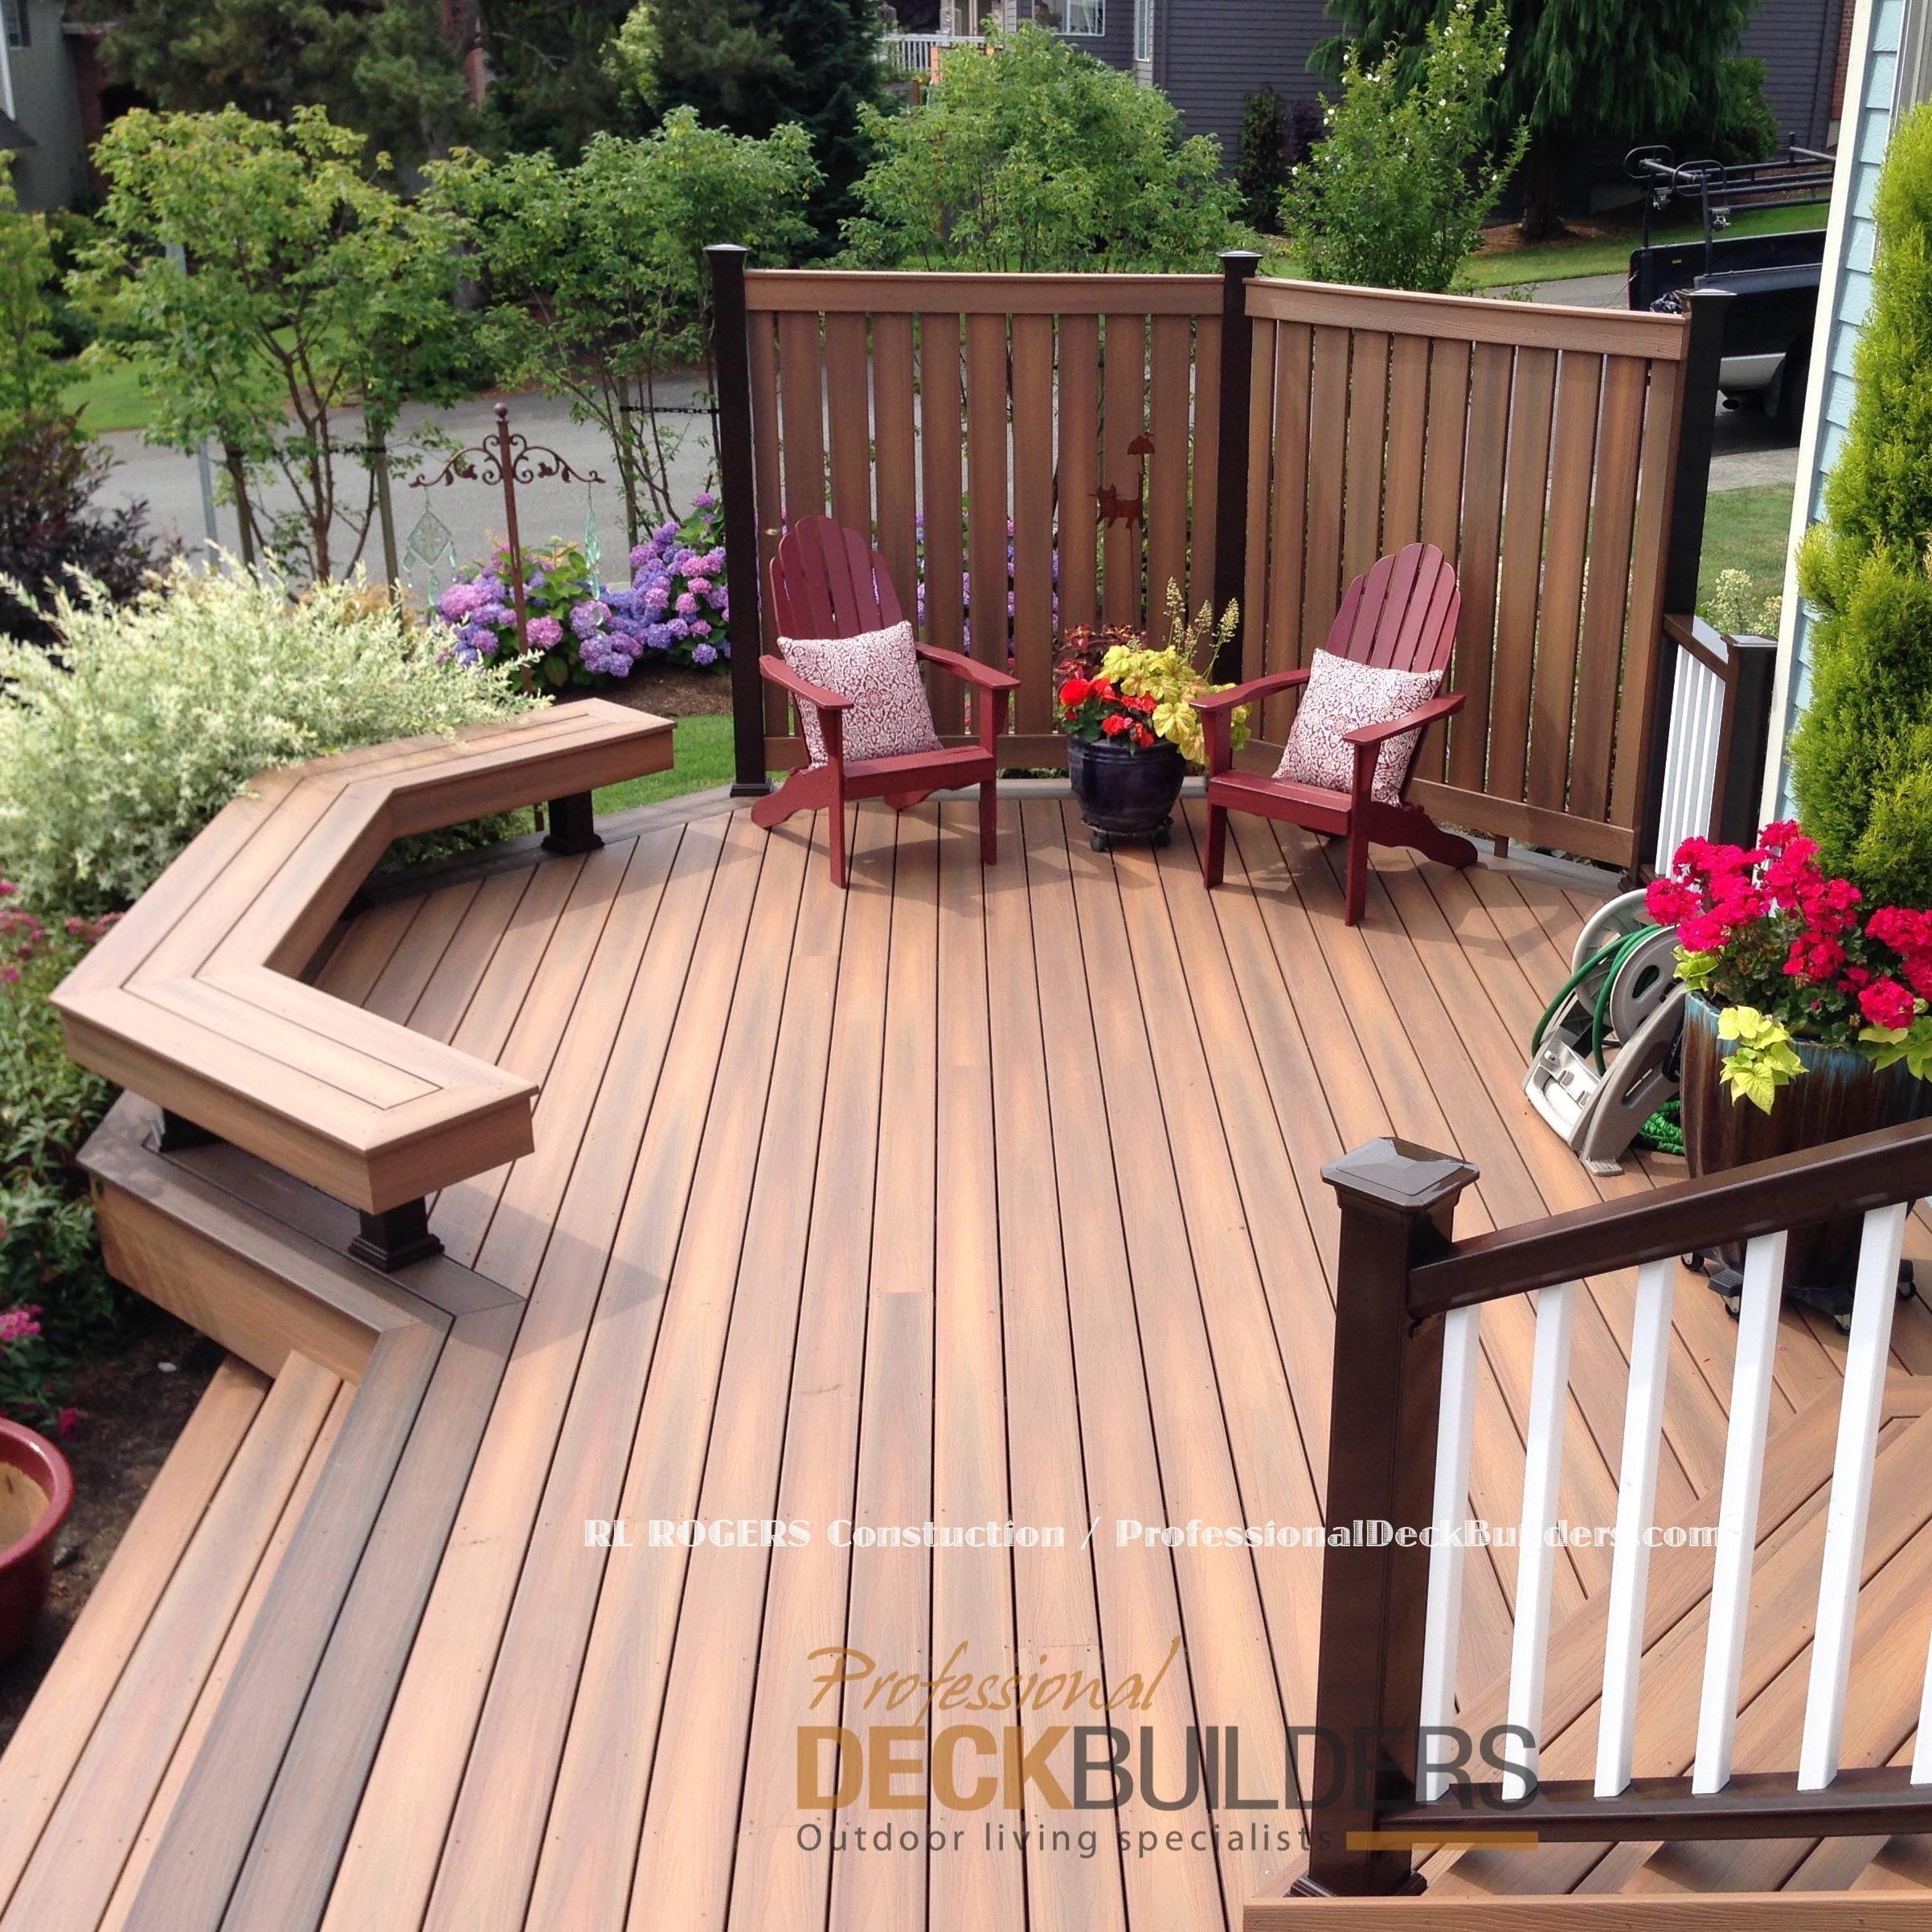 Professional Deck Builders - Marysville, WA 98270 - (425)341-3137 | ShowMeLocal.com